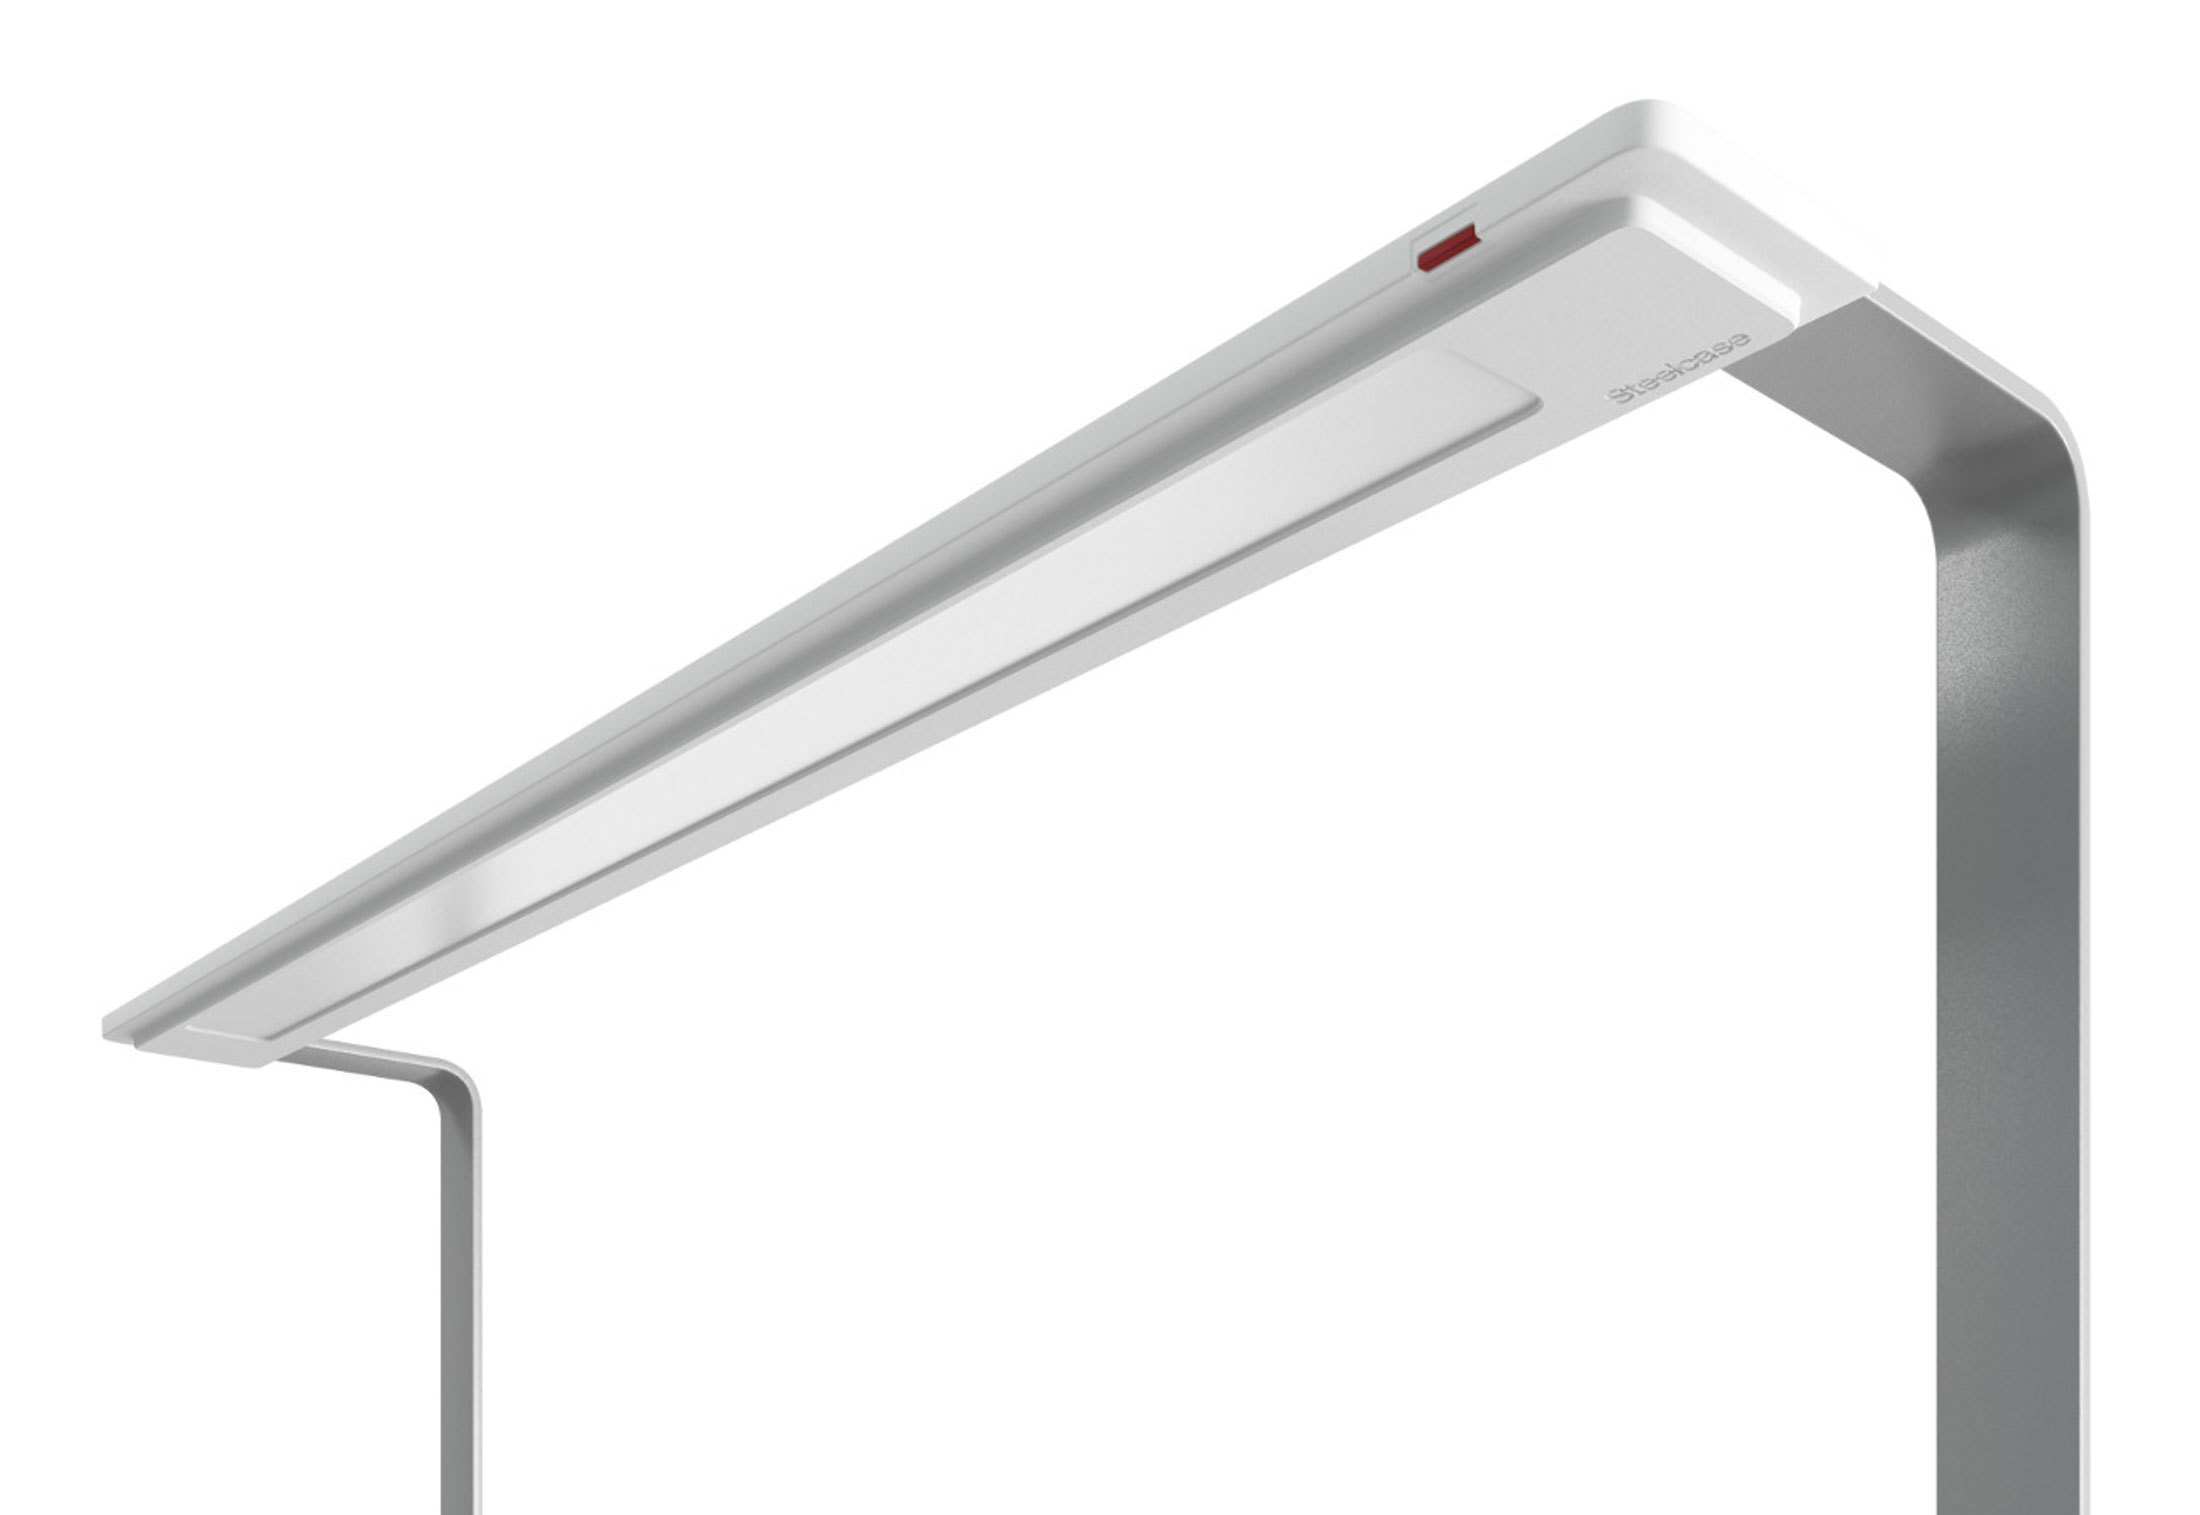 1+1 LED task light by Steelcase | STYLEPARK Led Task Light on led brick light, led area light, led light with dimmer switch, led path light, led work light, led light technical drawing, simkar led light, led security light, led accent light, led candle light, led service light, led lamp, clip on led light, led test light, micro led light strip, led street lights, led target light, retractable led light, led fan, led sign light, led decorative light, led case light, led drop light, led cove, led step light, light rope,